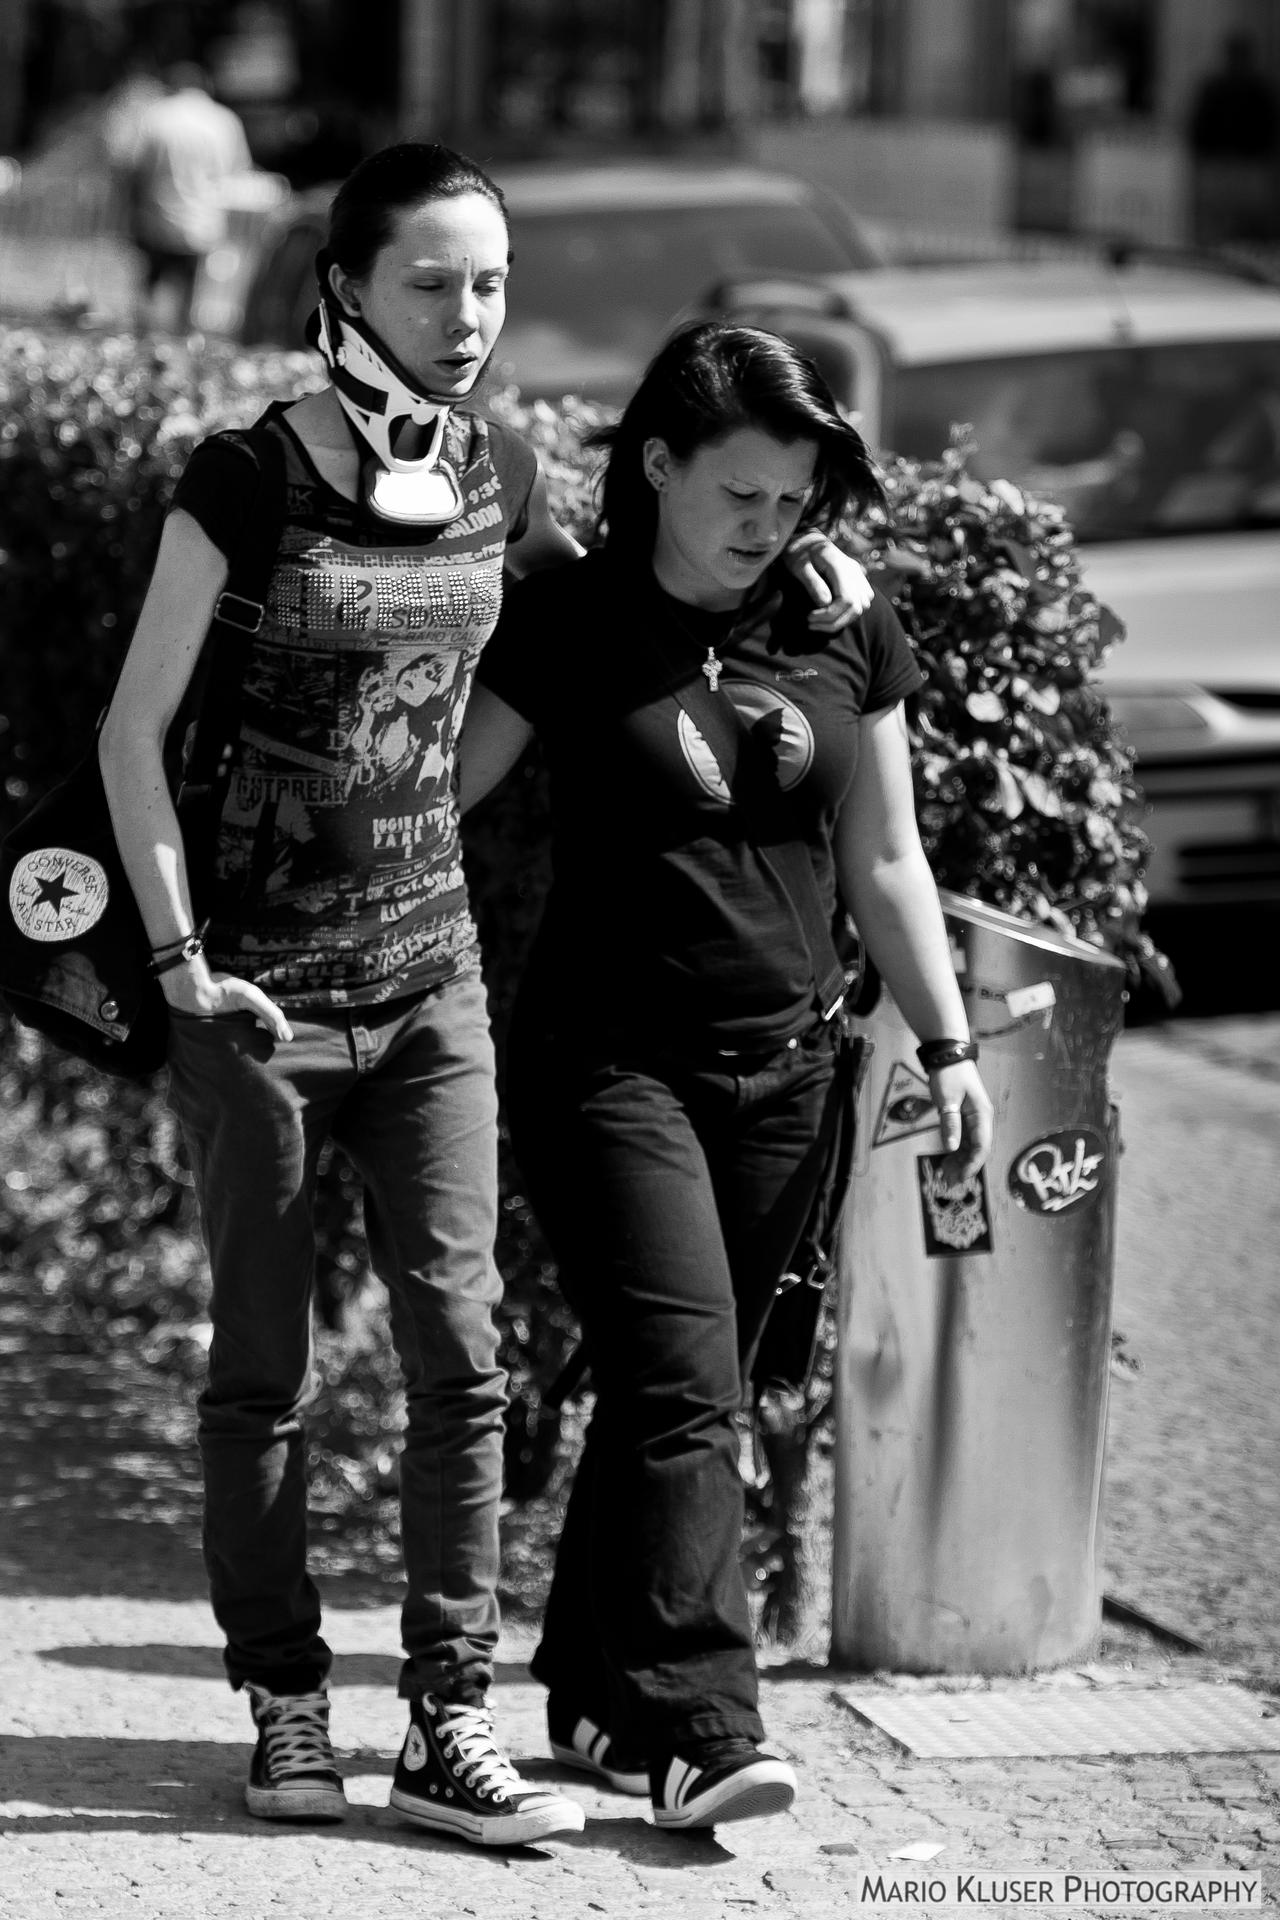 Friends Indeed - Street Photography